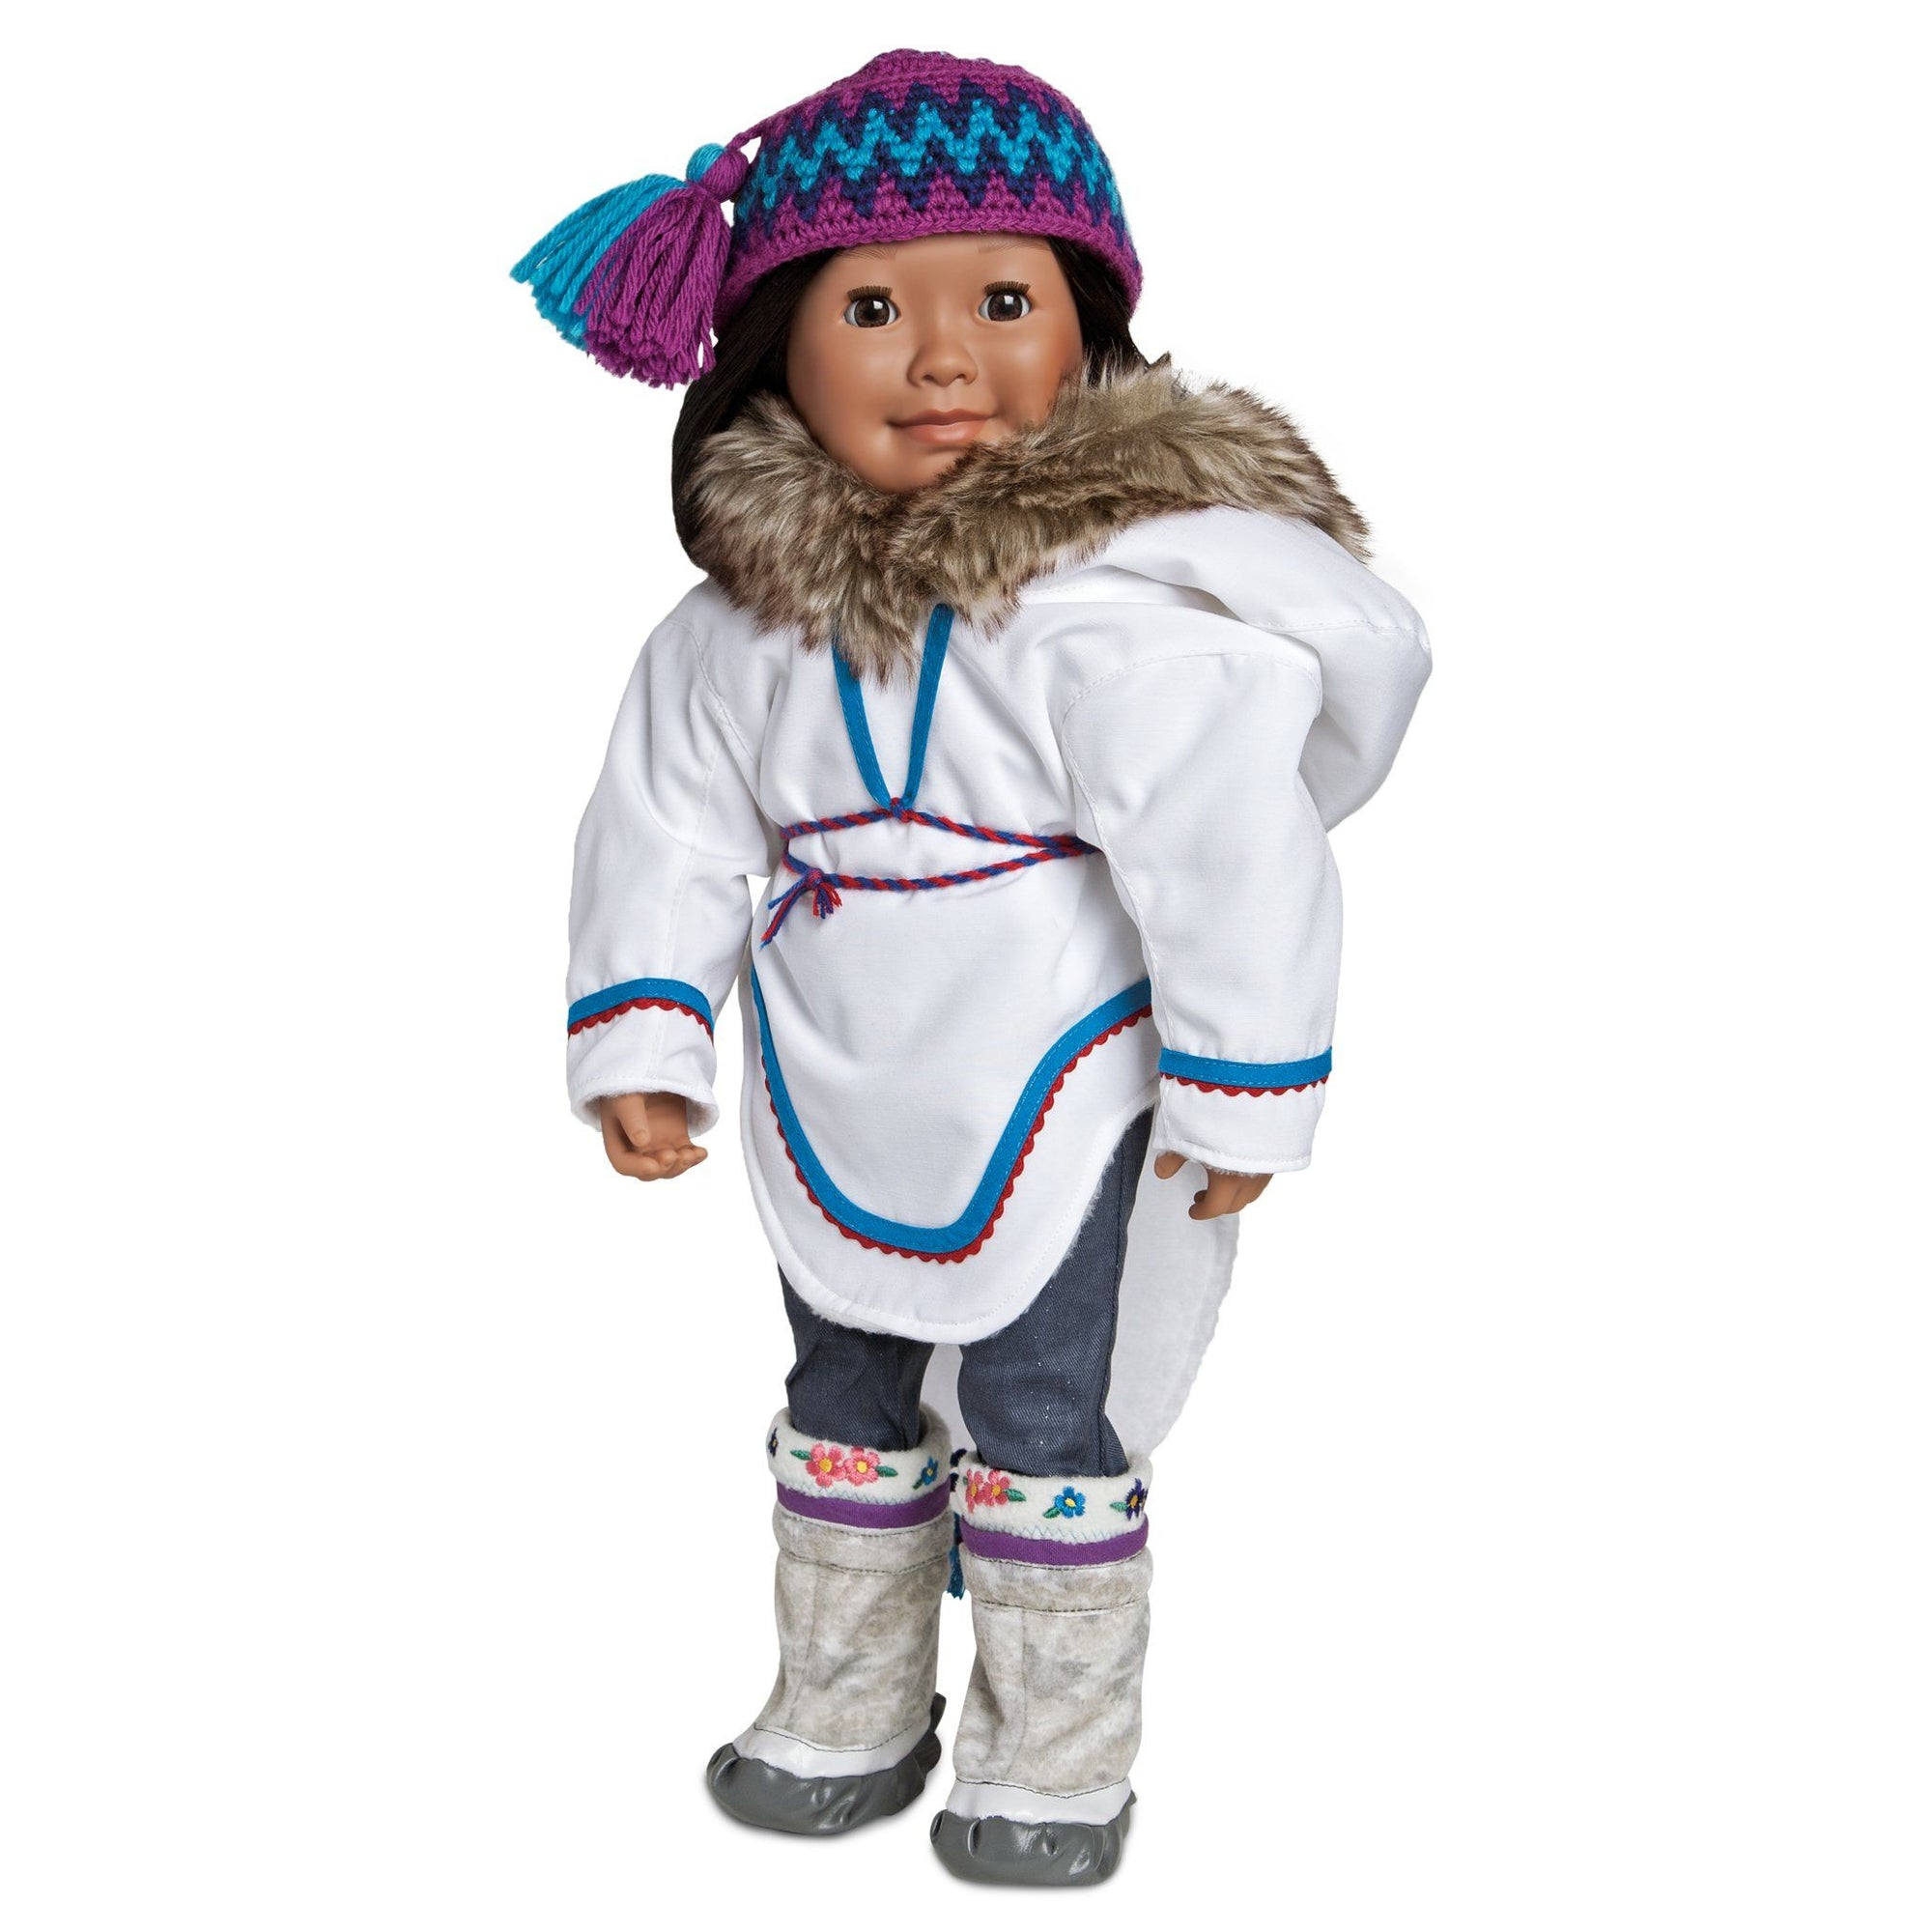 Amauti jacket coat parka with faux fur trim on Maplelea doll Saila. Fits all 18 inch dolls